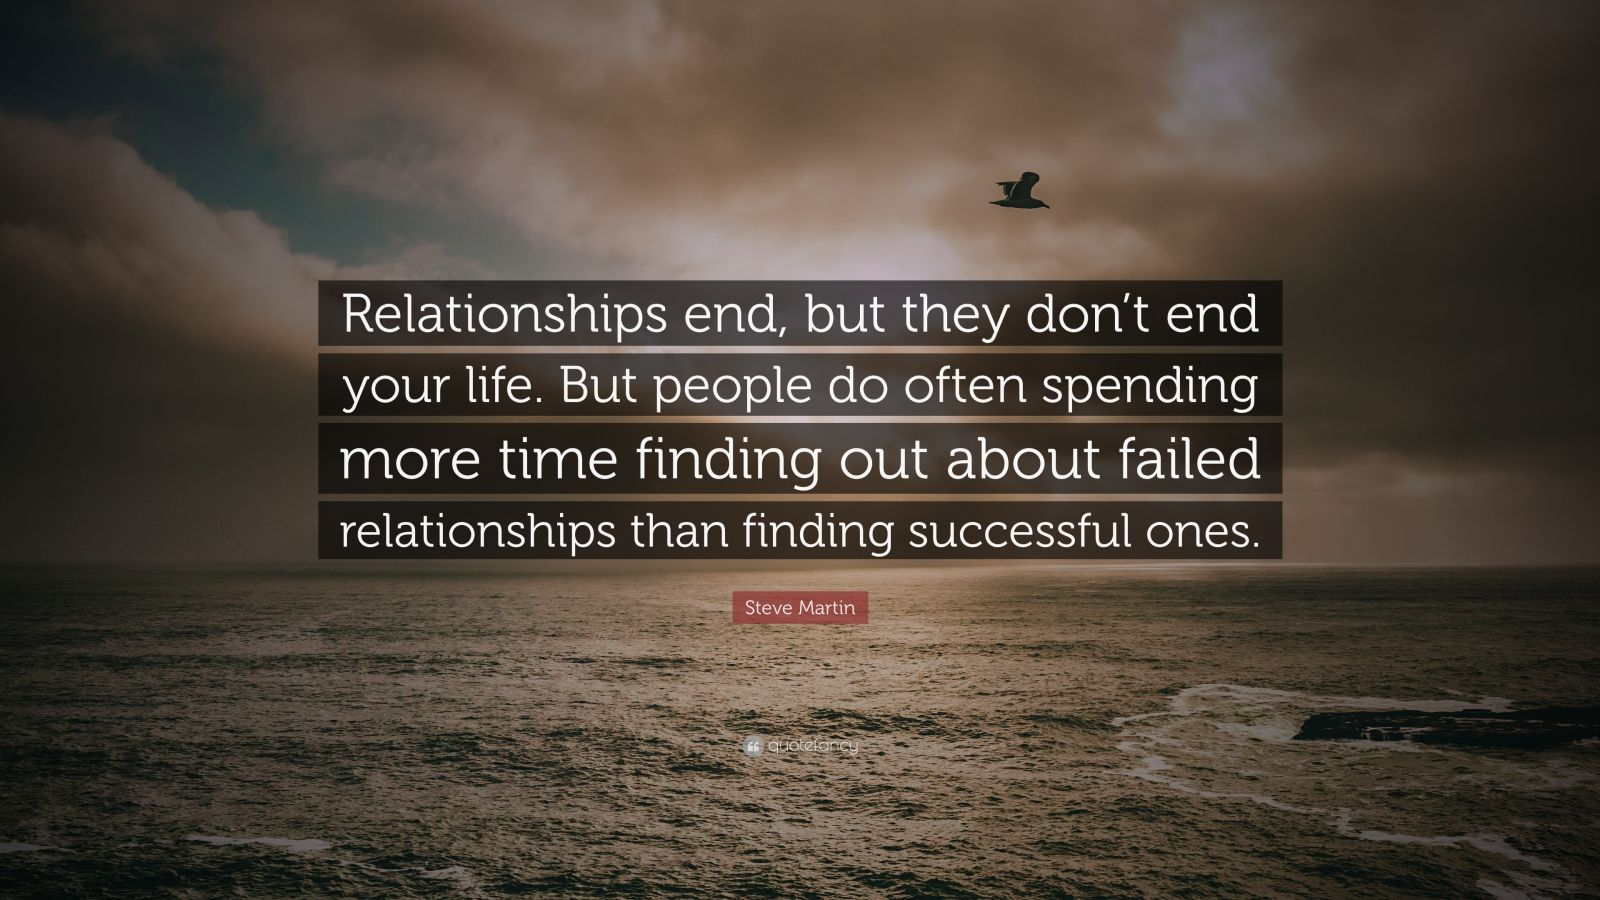 """Steve Martin Quote: """"Relationships end, but they don't end your life. But people do often spending more time finding out about failed relationships than finding successful ones."""""""